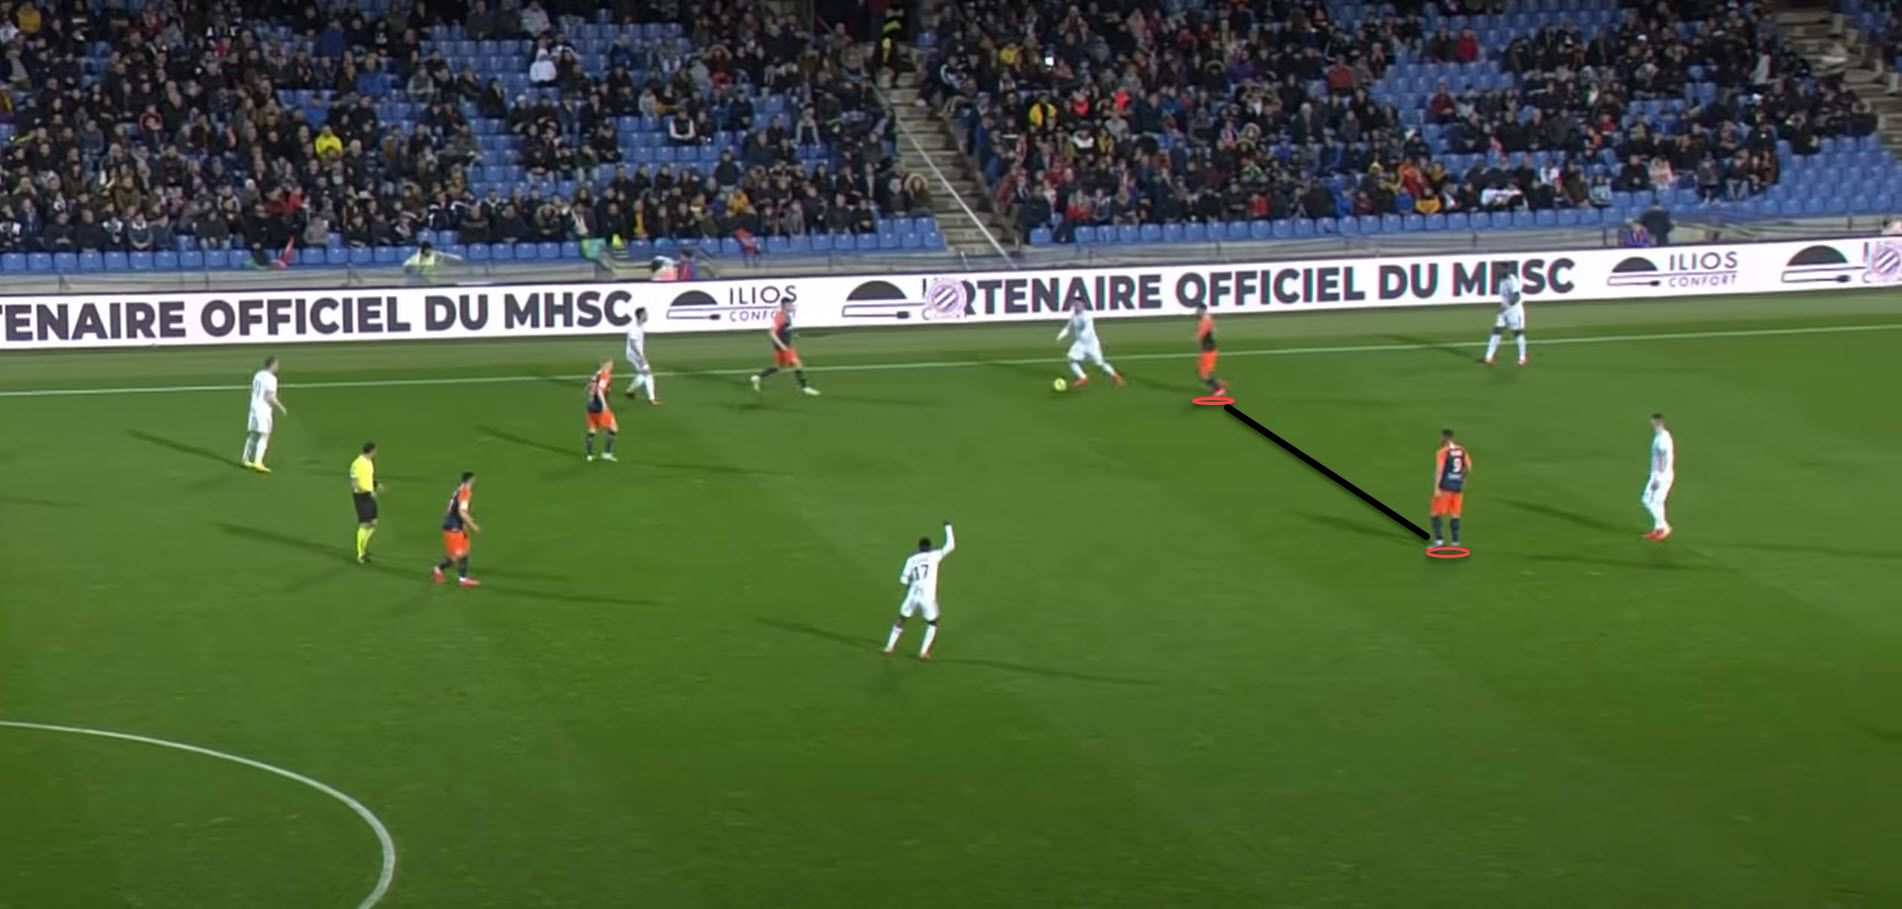 Montpellier 2019/20: Their striker duo - scout report - tactical analysis tactics